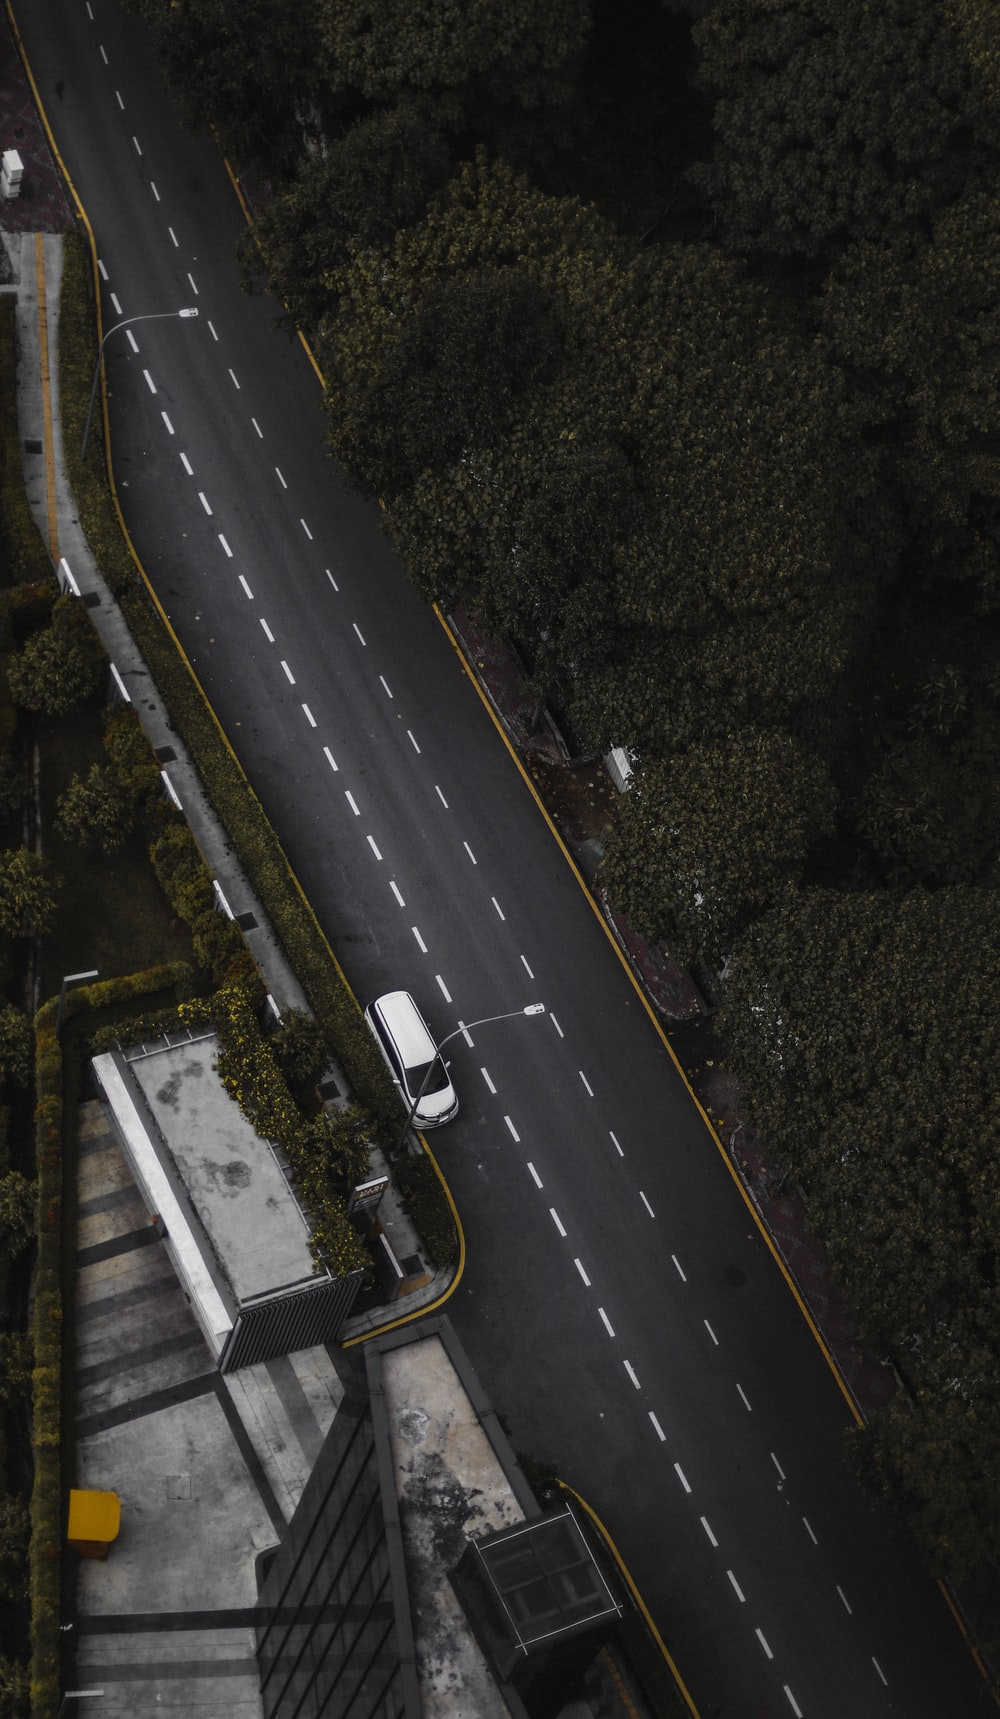 aerial photo of white car passing by trees during daytime